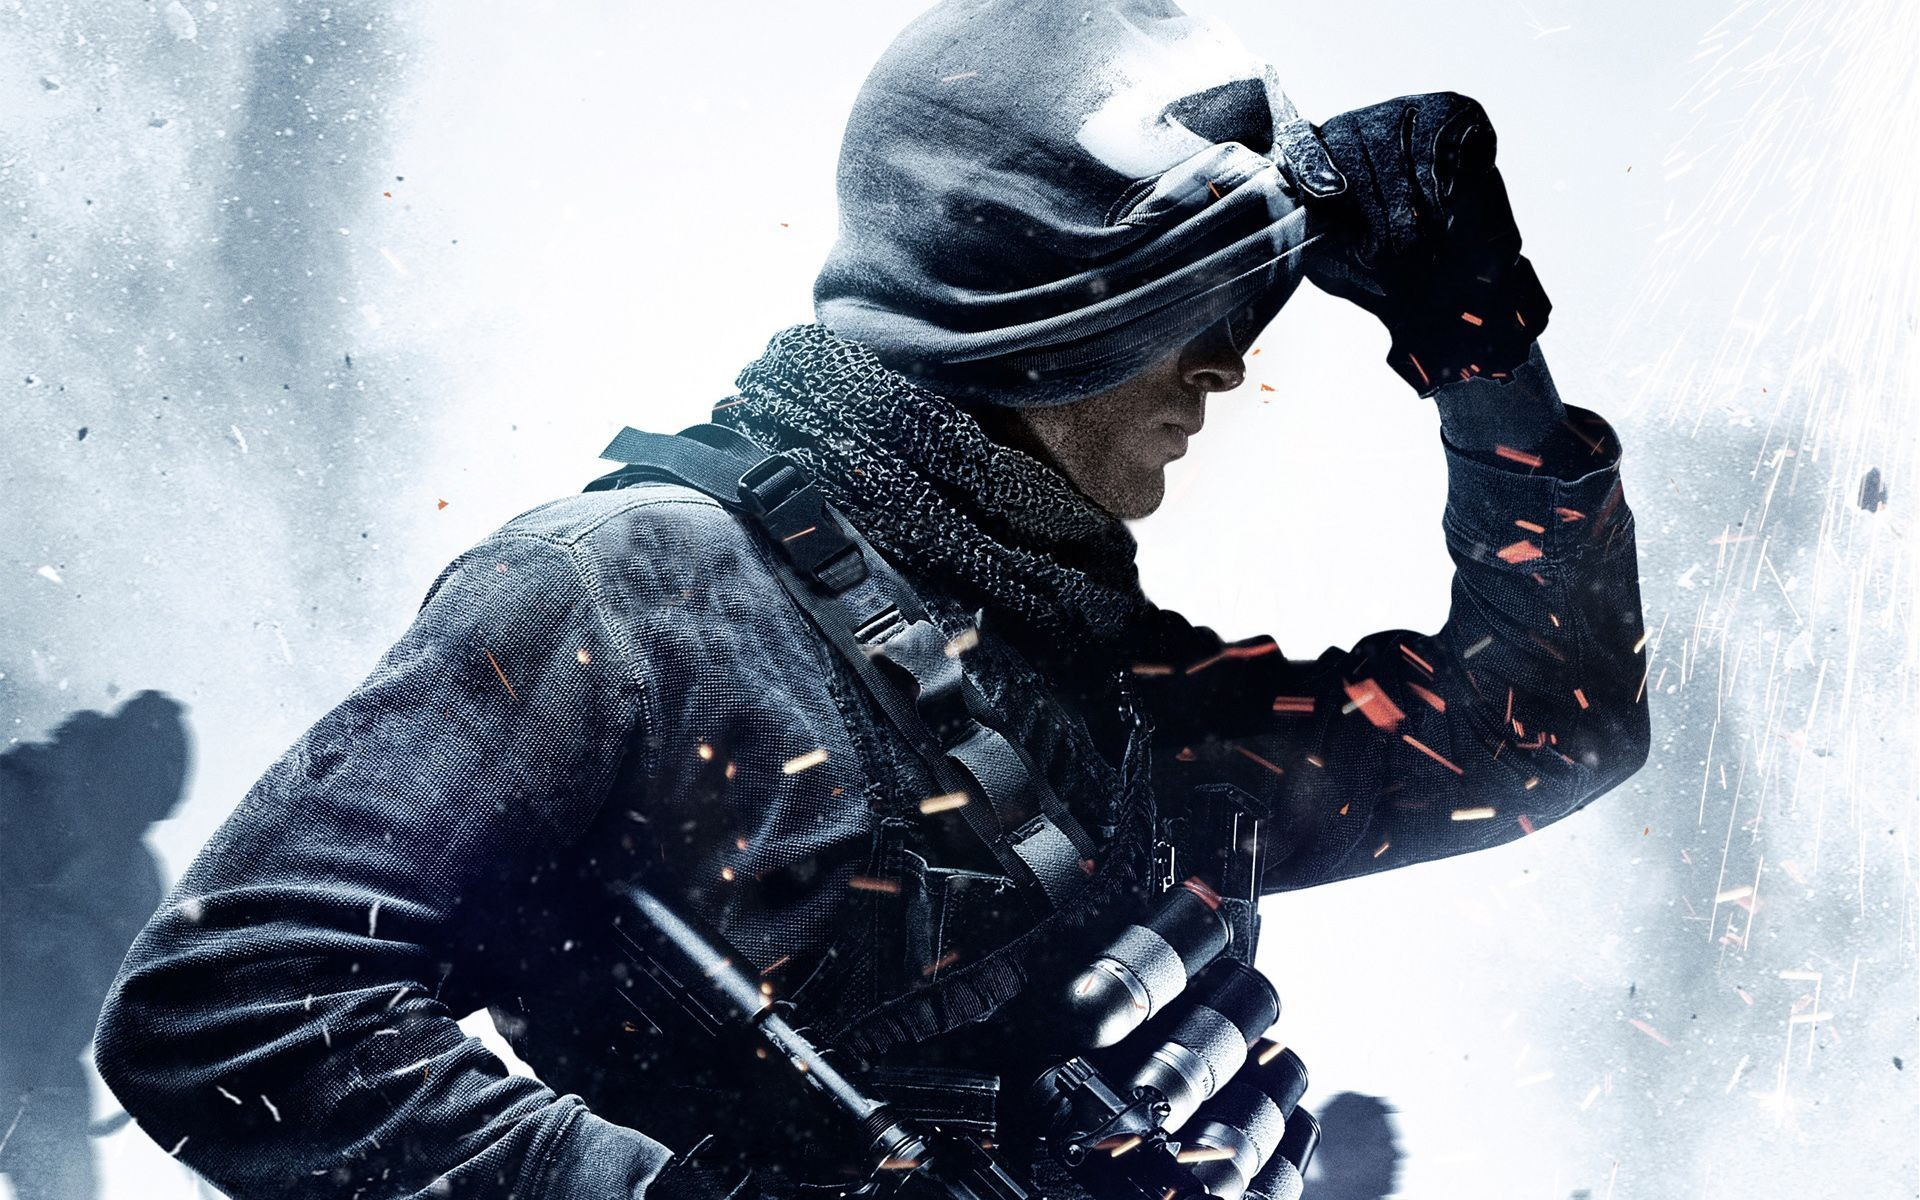 Call of Duty Ghosts Game Wallpapers